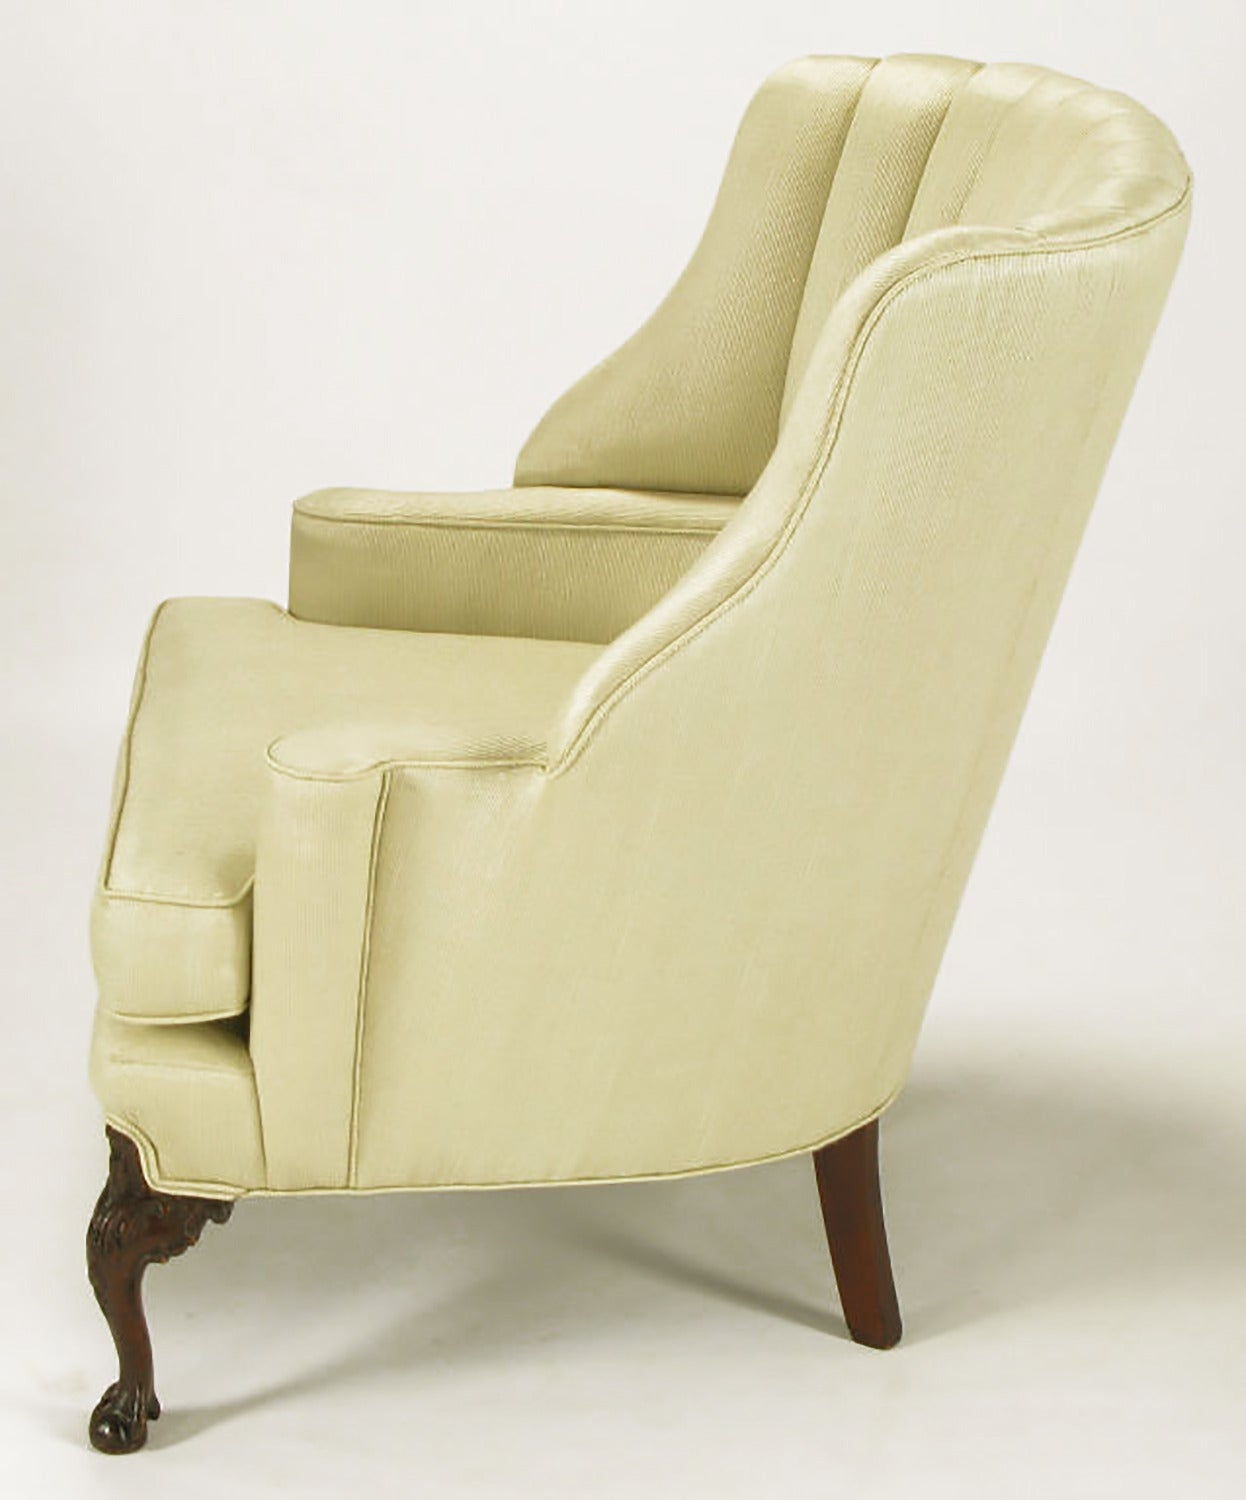 1930s Channel Back Claw Foot Georgian Wingback Chair In Excellent Condition For Sale In Chicago, IL